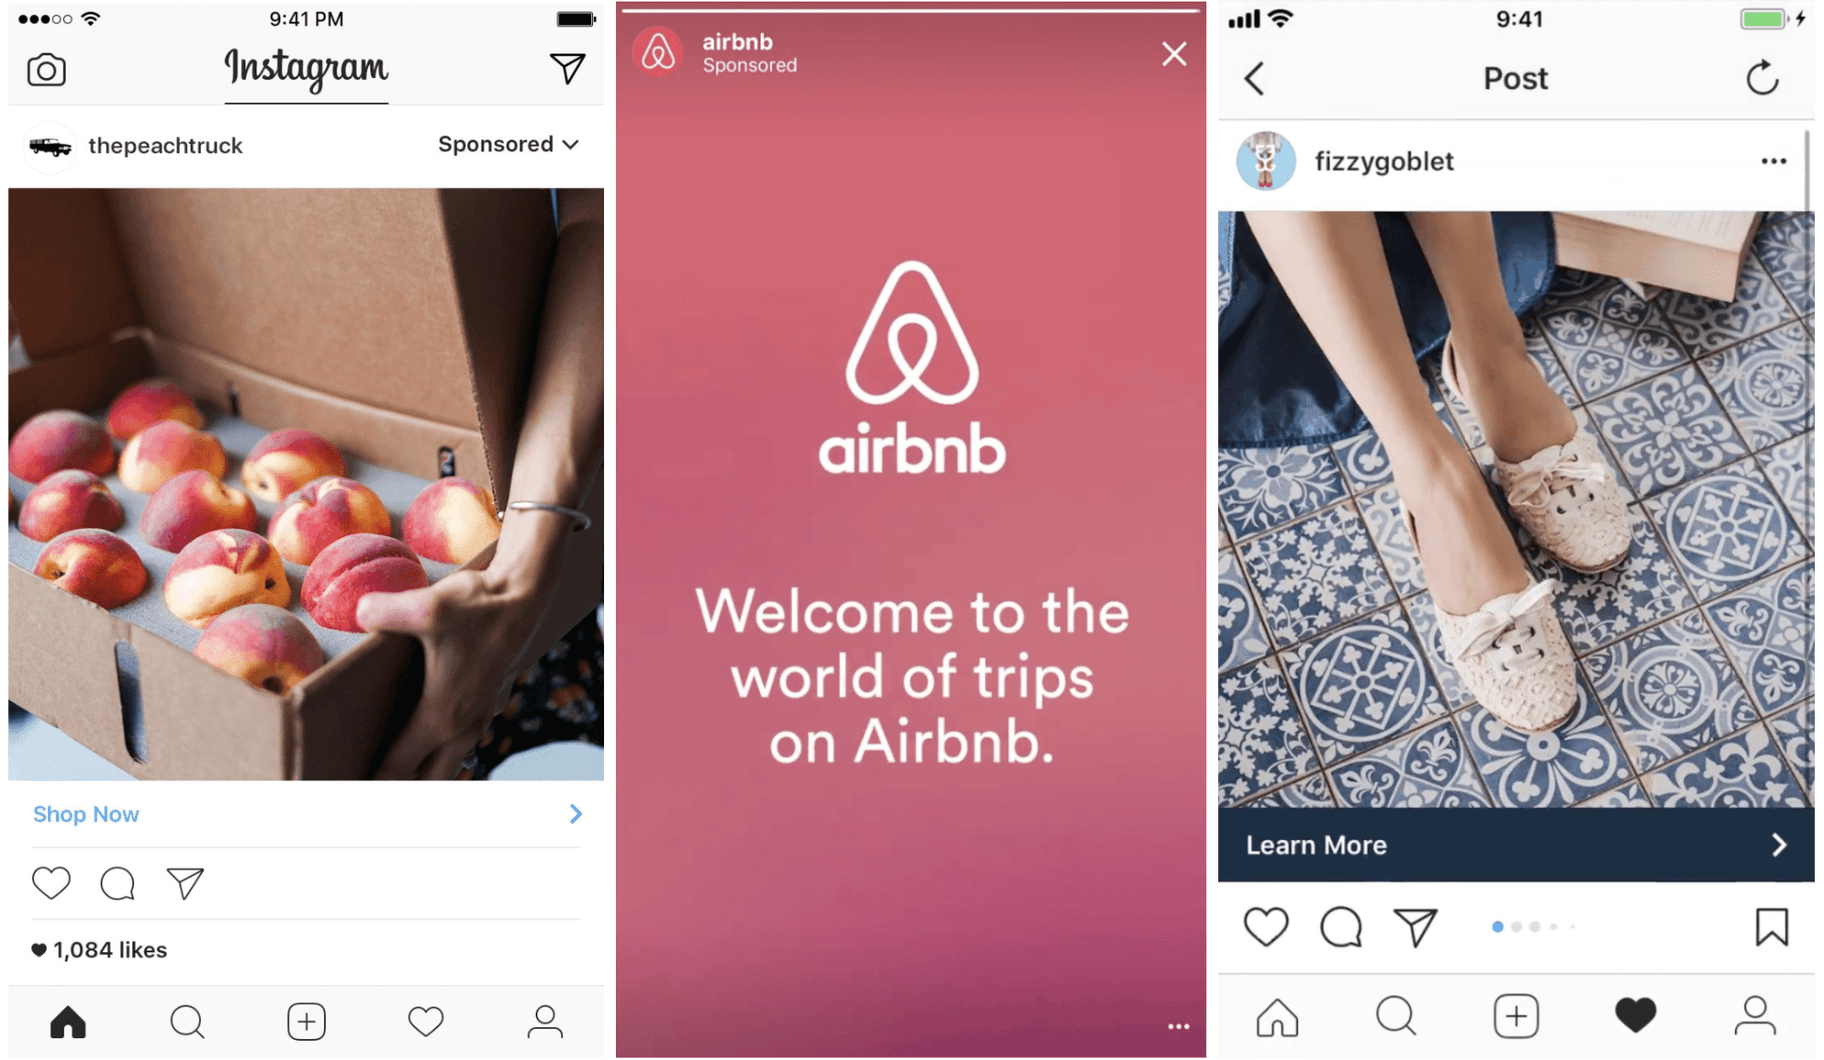 AirBNB Instagram Ads